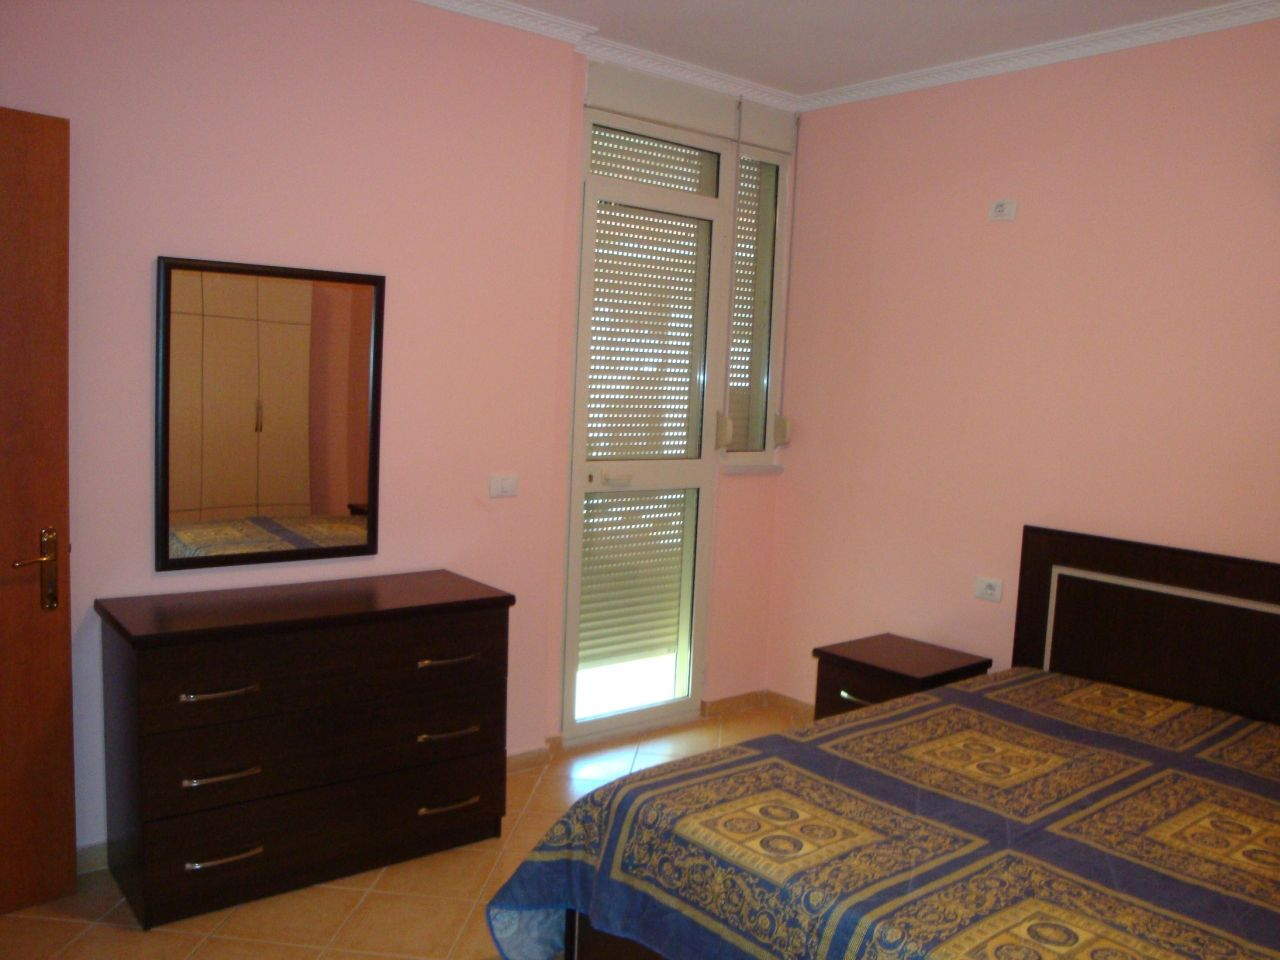 Apartment for rent in Tirana few minutes from the city center